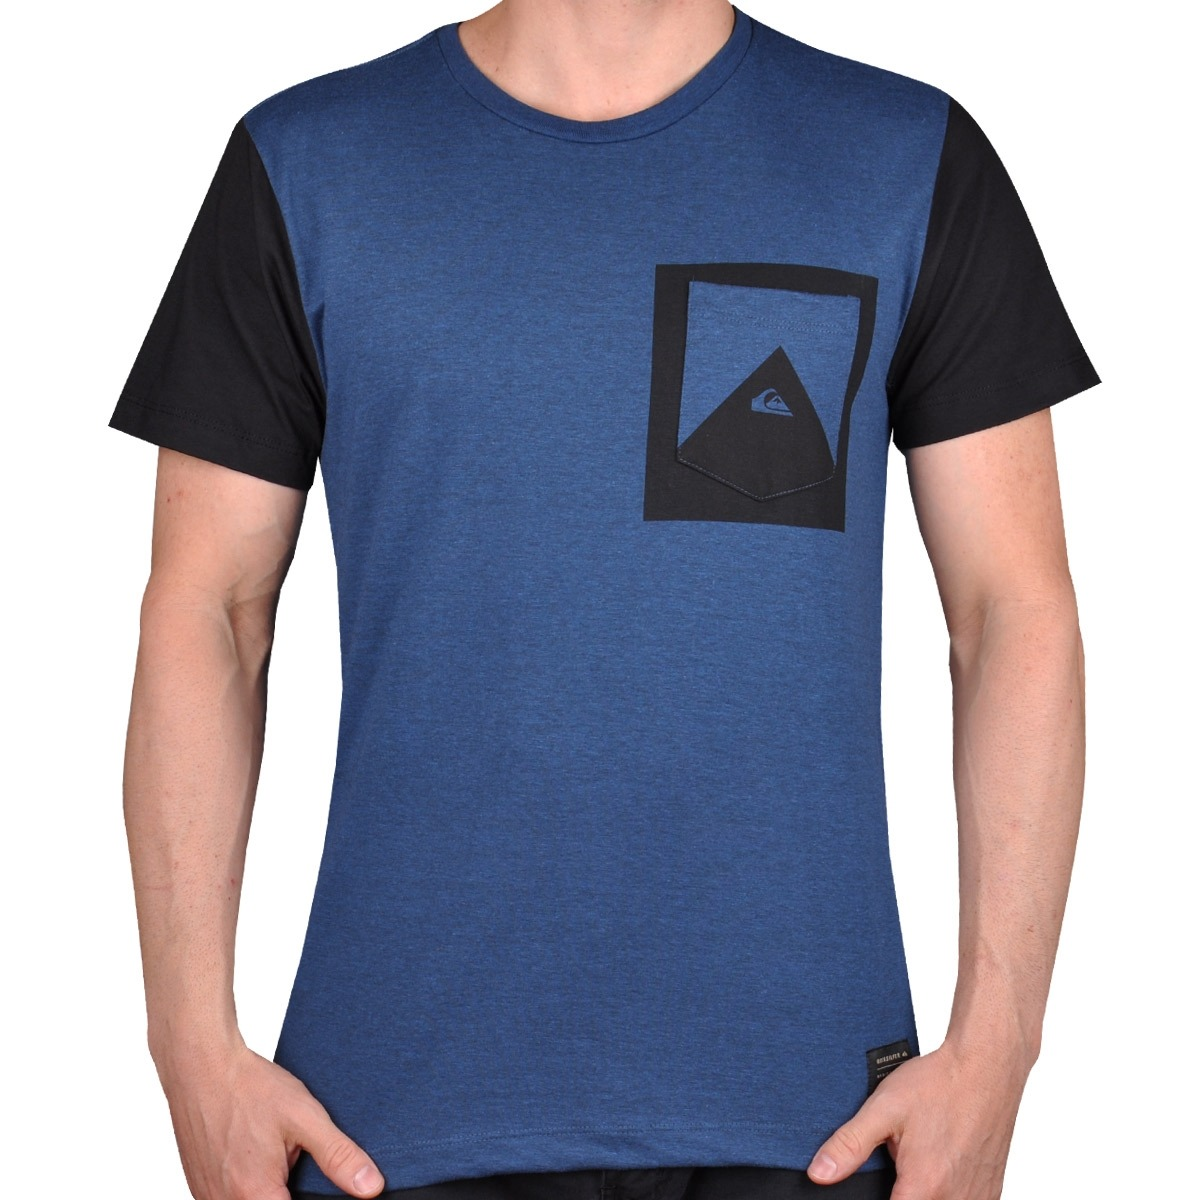 Camiseta Quiksilver Card Azul - Cut Wave - R  59 62d58e1f577